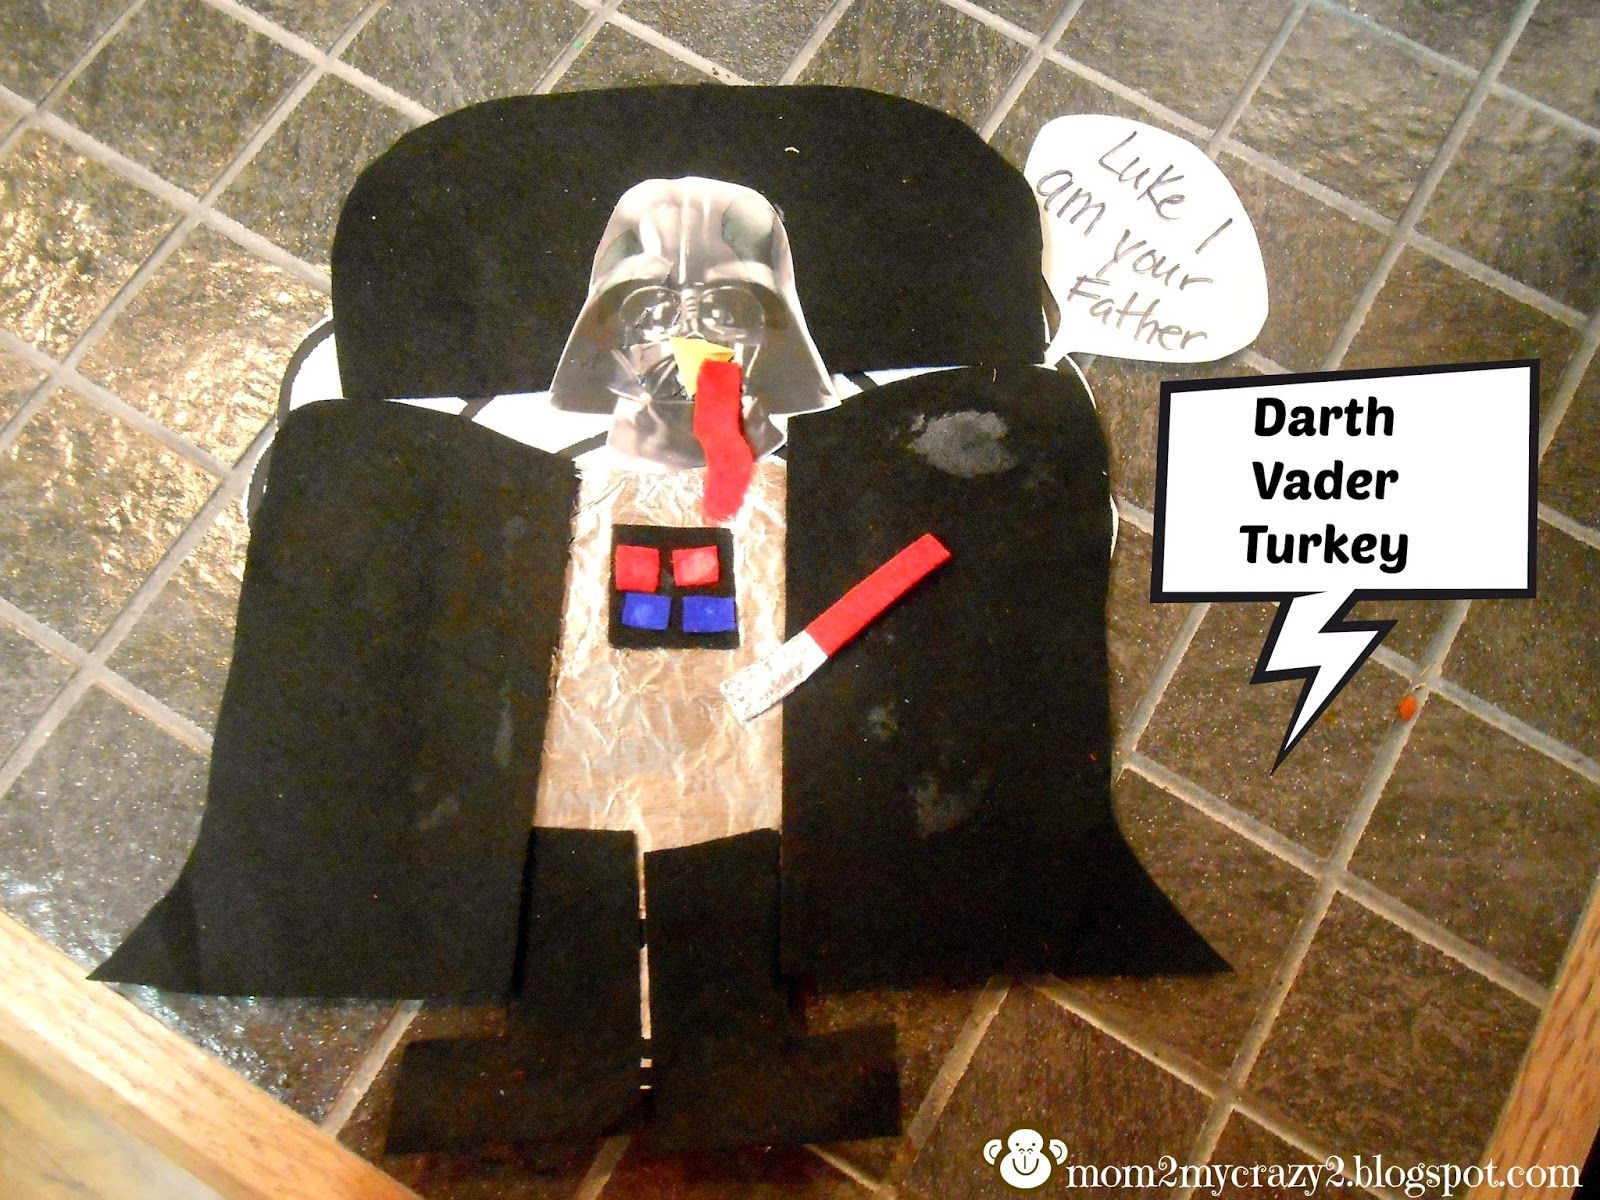 The Great Turkey Disguise Darth Vader Running Away I